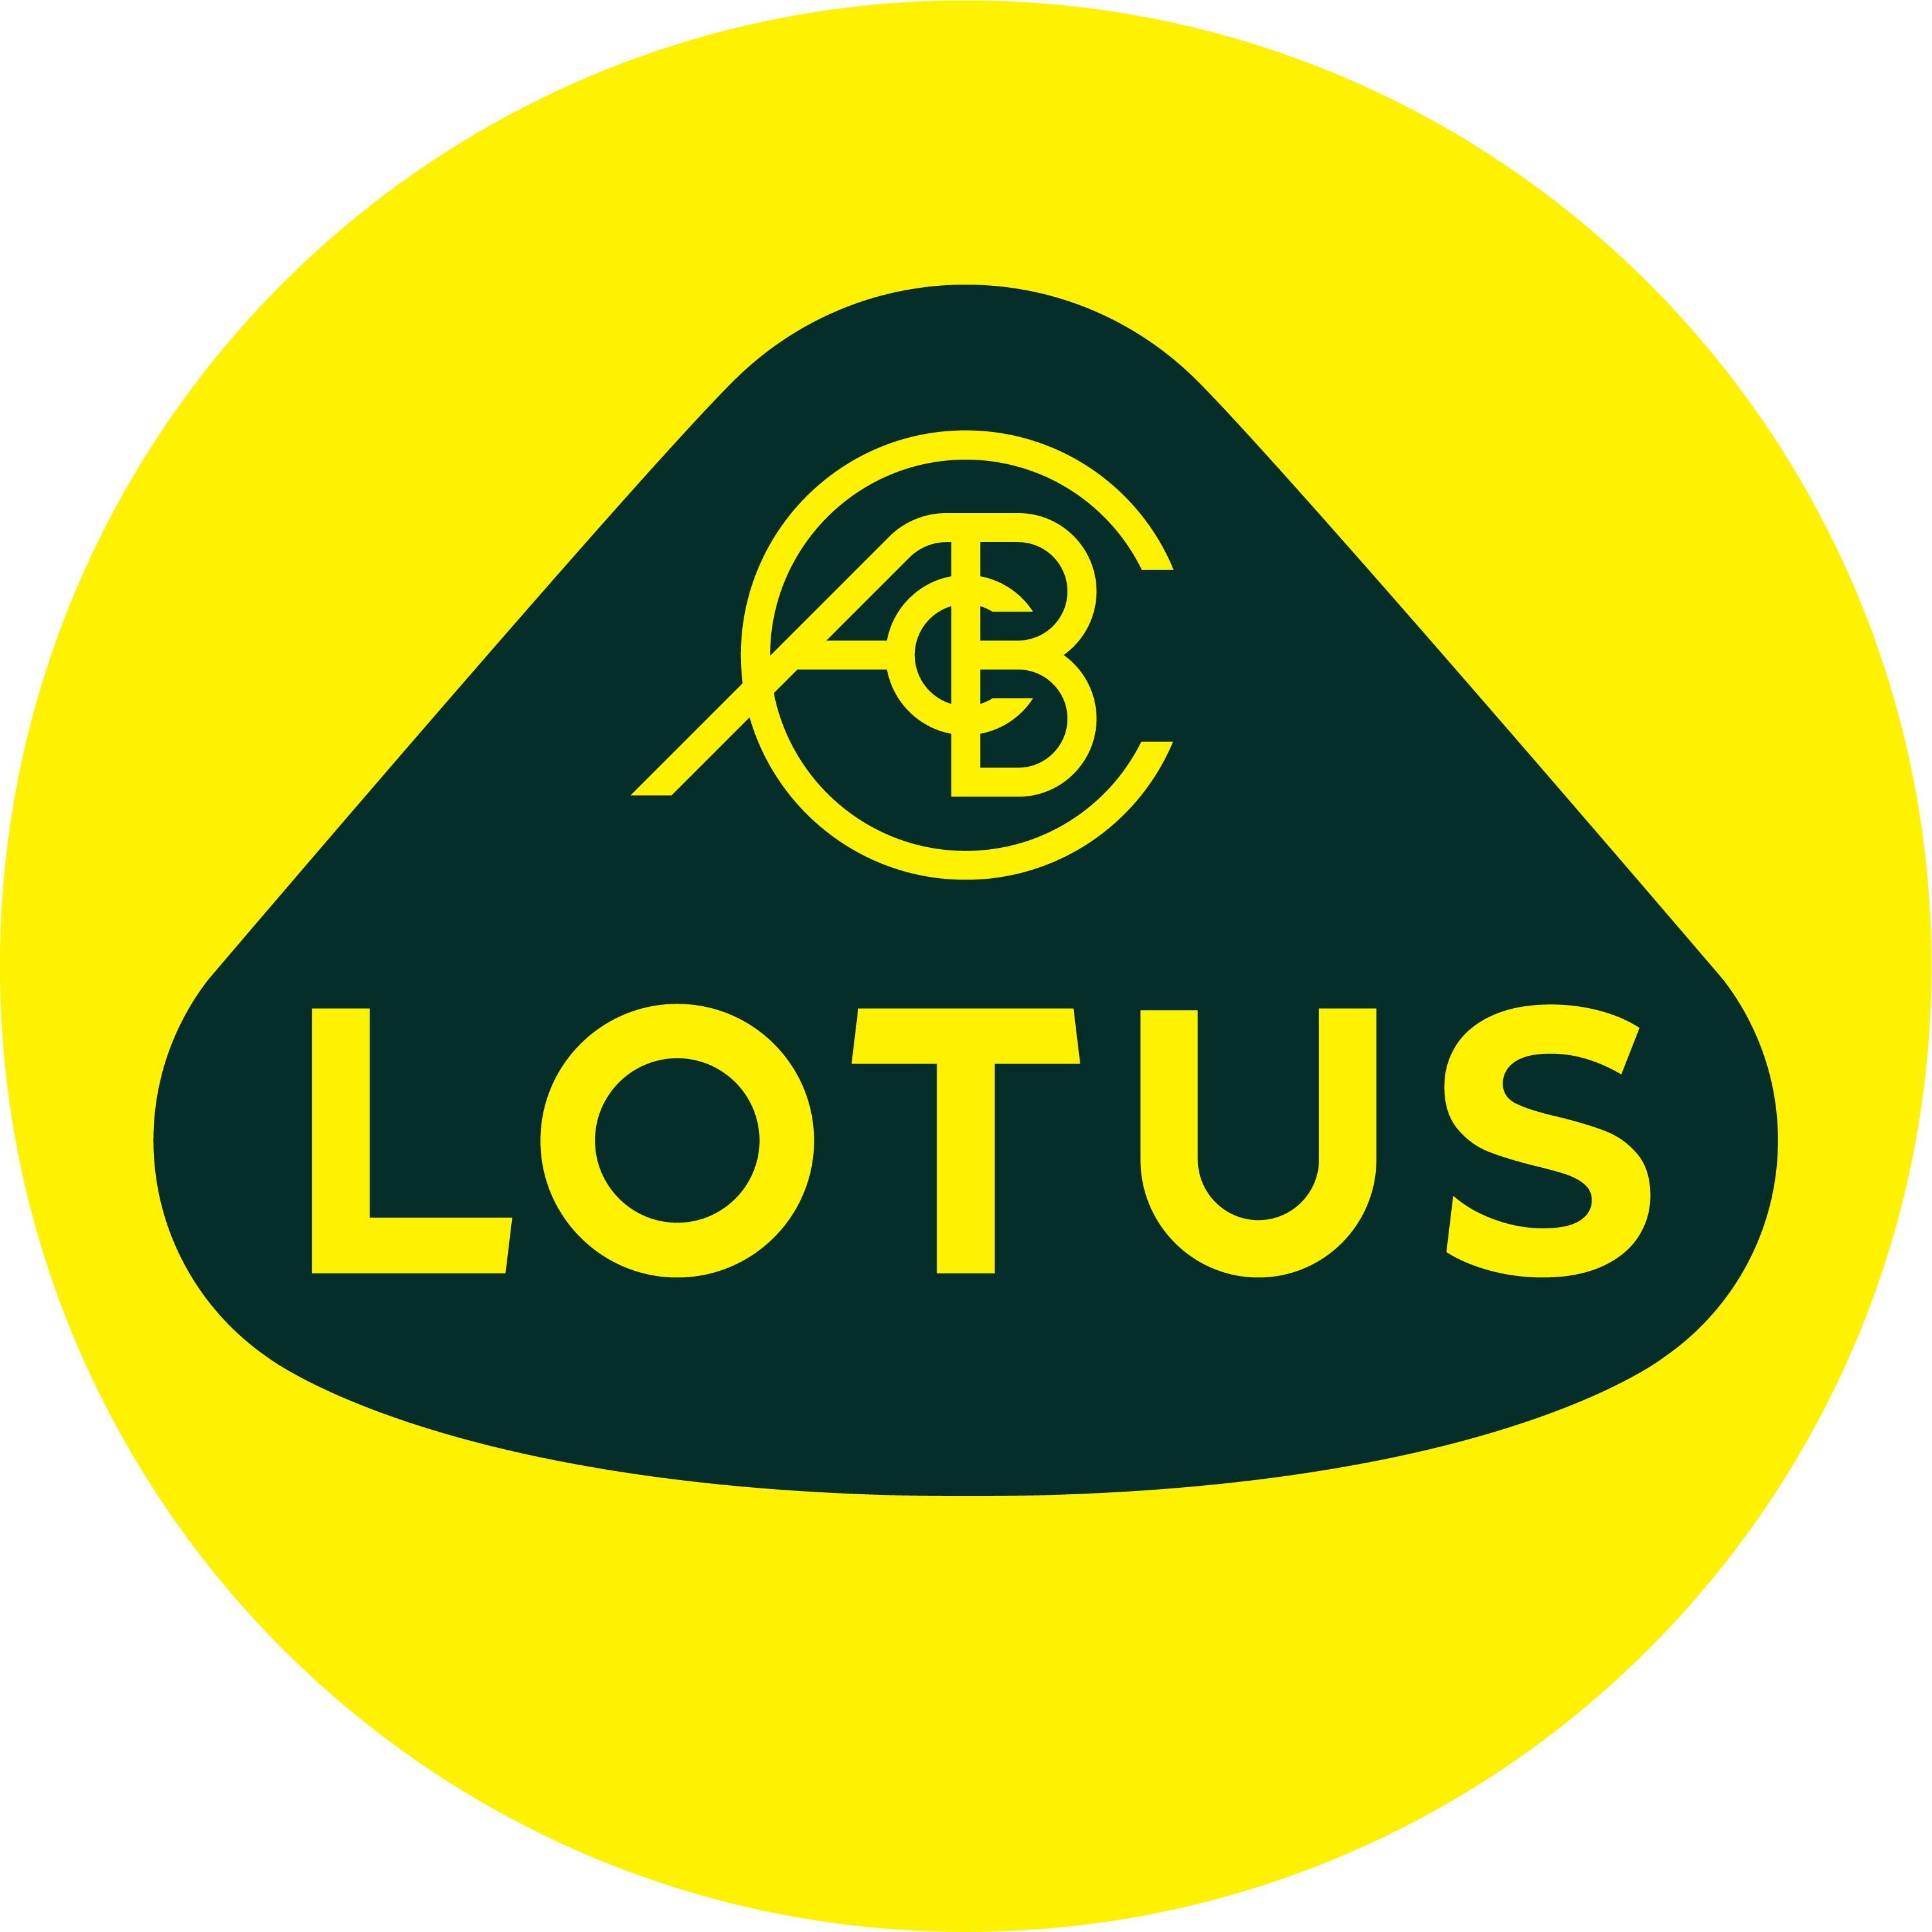 boardwalk lotus logo - huge